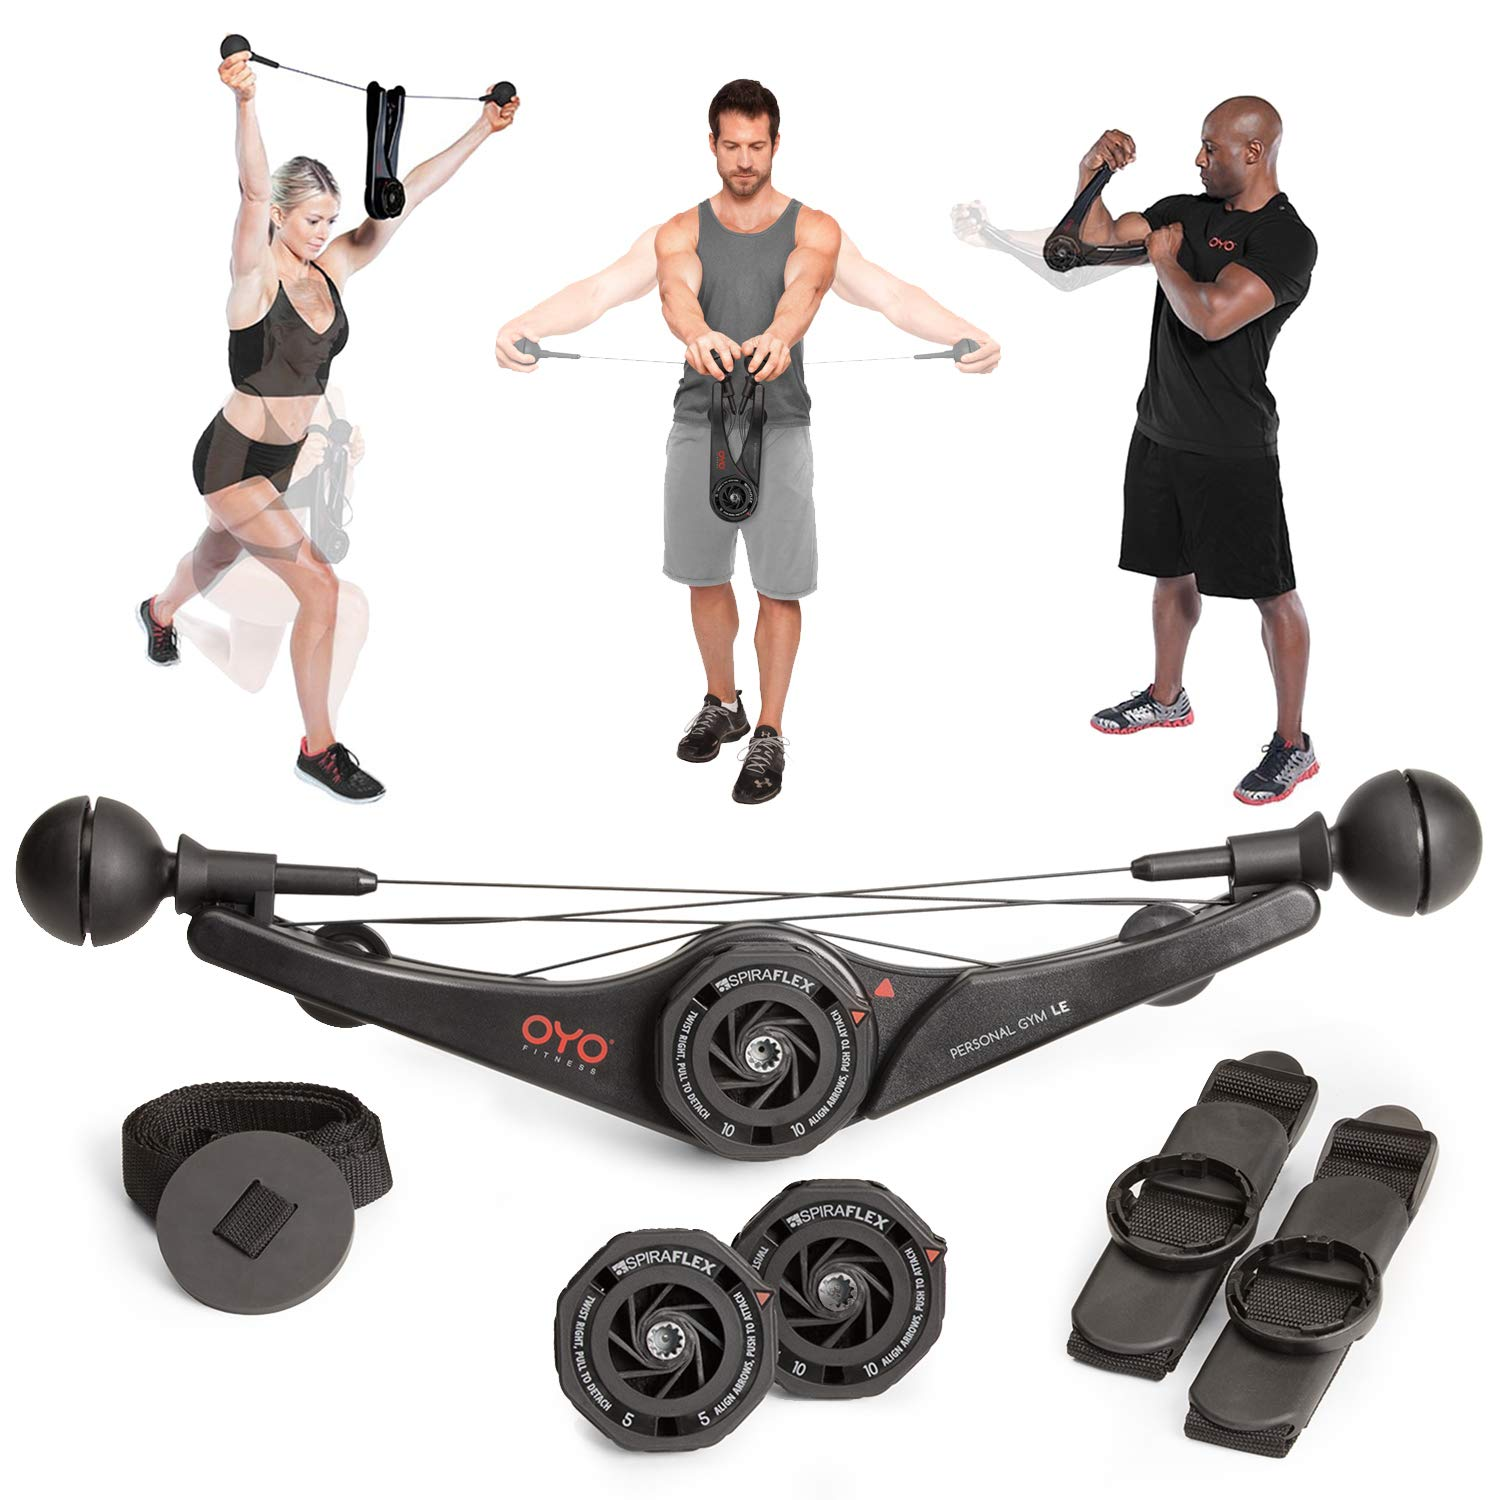 OYO Personal Gym – Full Body Portable Gym Equipment Set for Exercise at Home, Office or Travel – SpiraFlex Strength Training Fitness Technology – Used by NASA